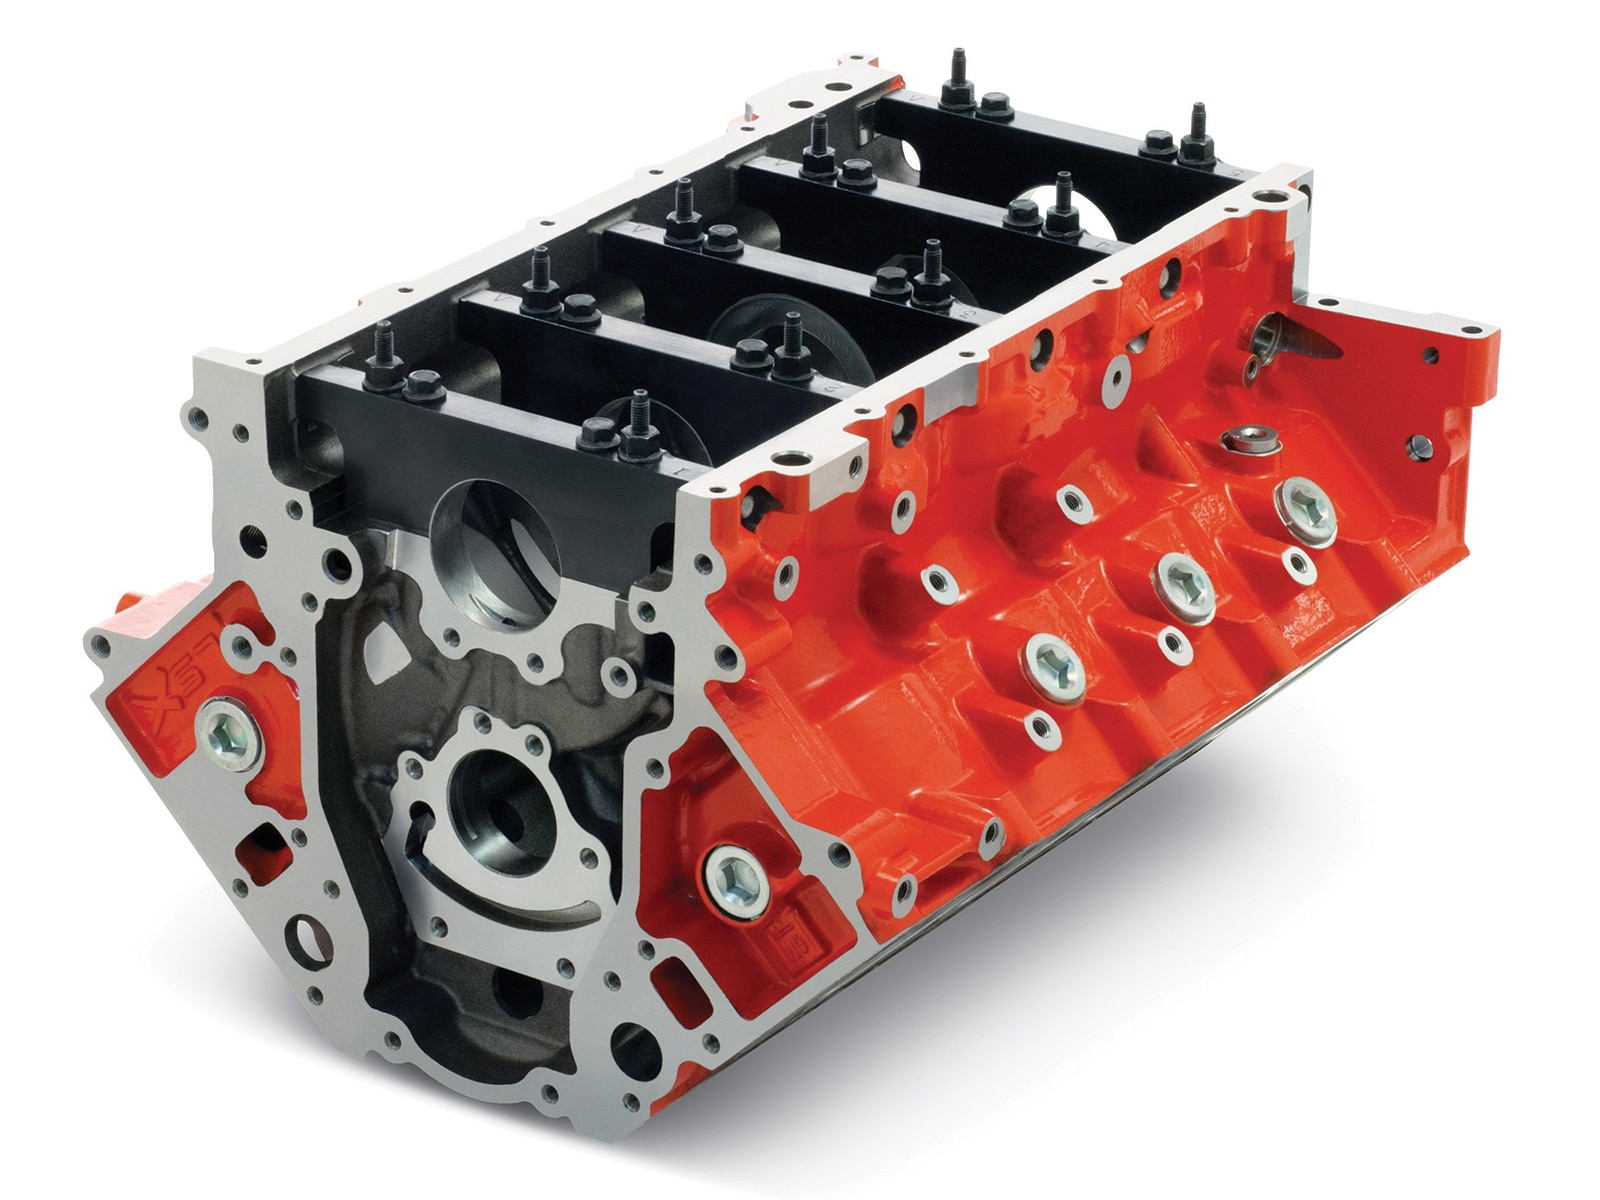 Chevy Performance Lsx376 Engine Block